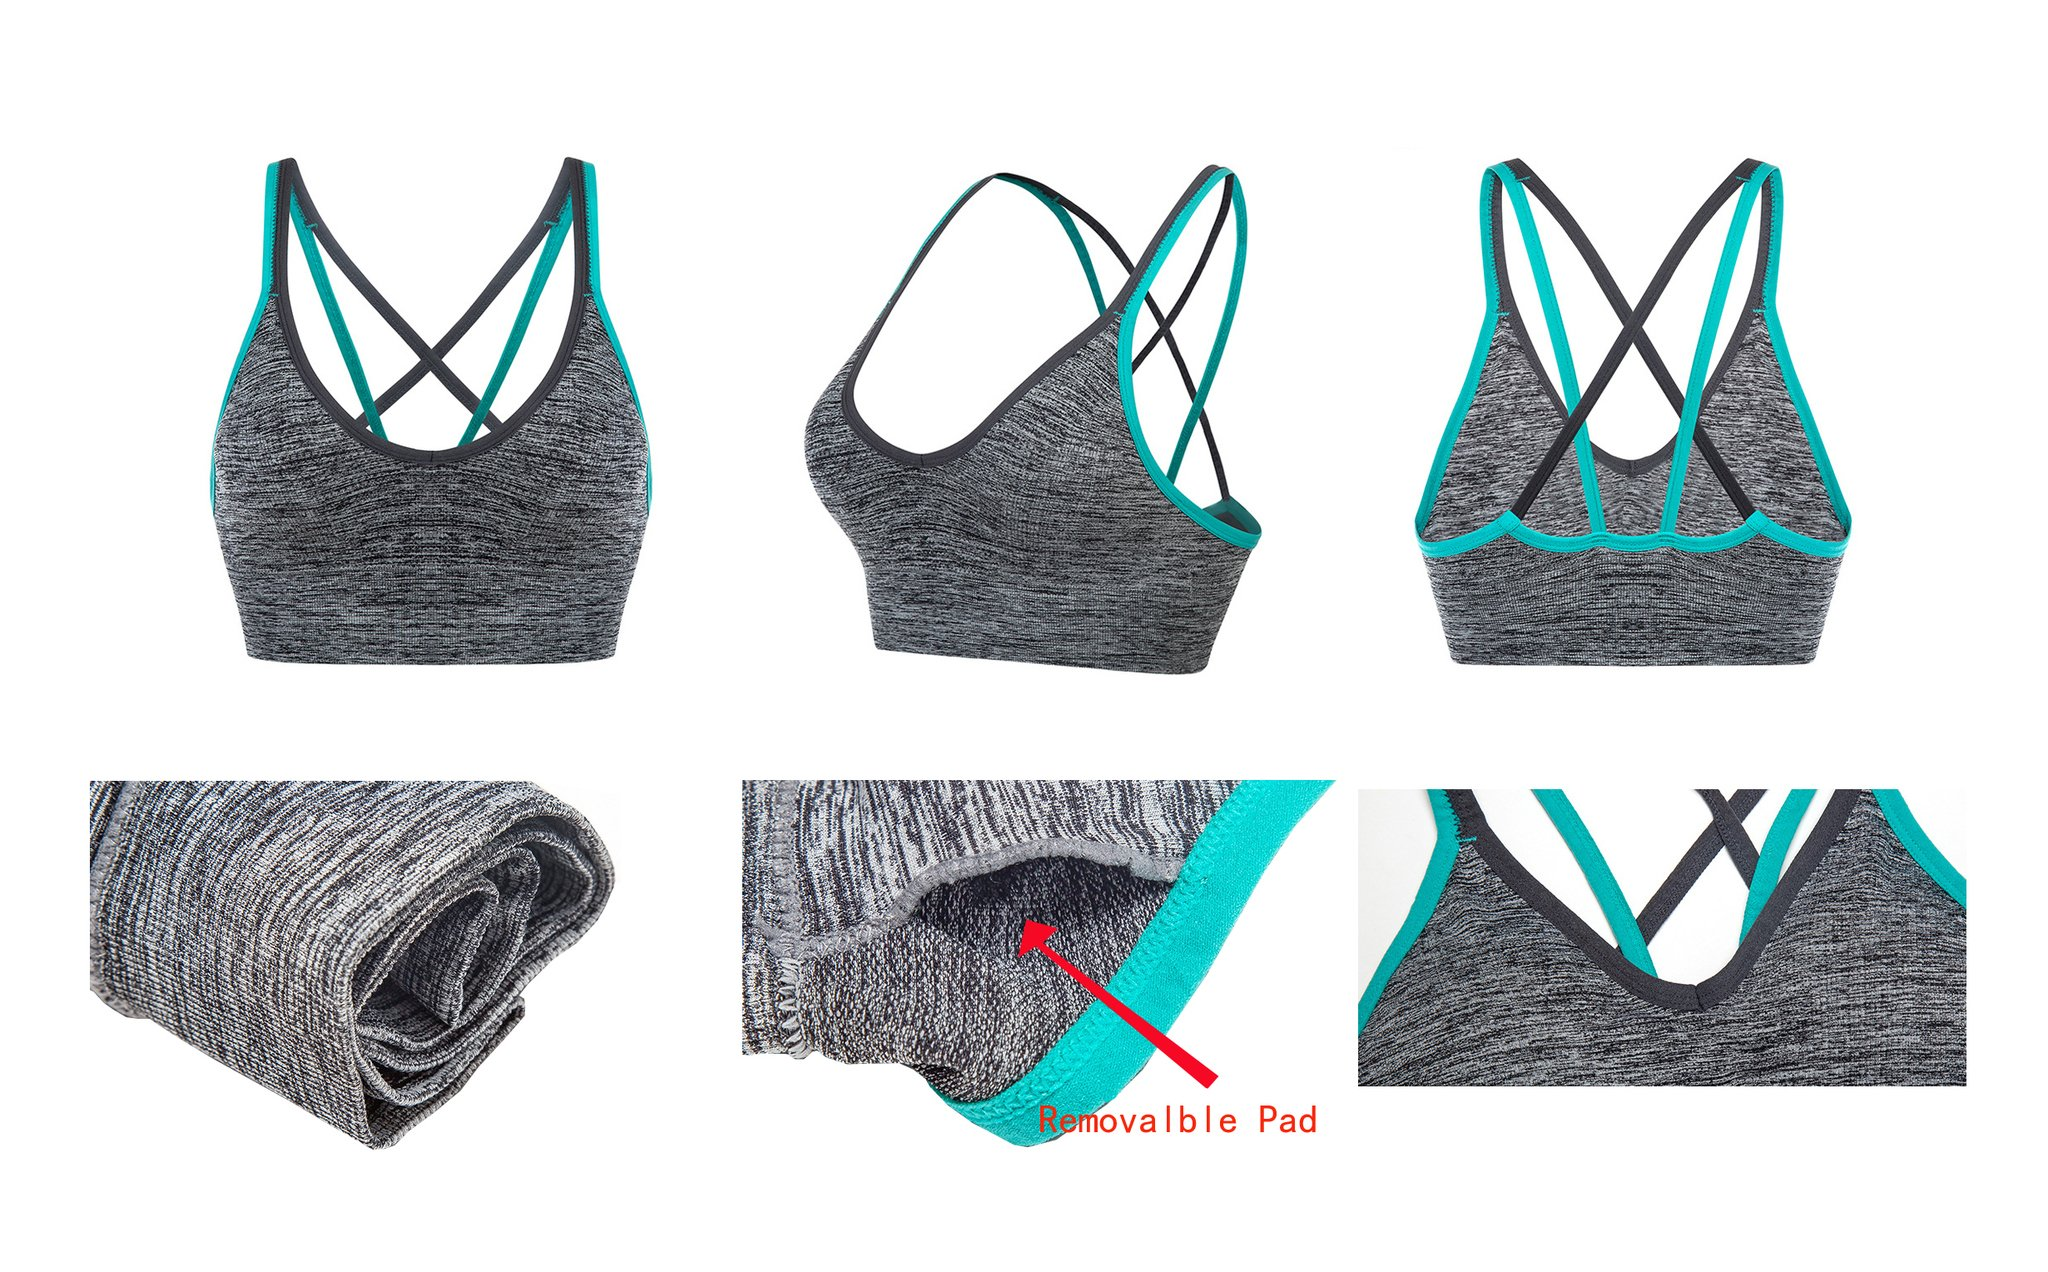 AKAMC Women's Removable Padded Sports Bras Medium Support Workout Yoga Bra 3 Pack by AKAMC (Image #4)